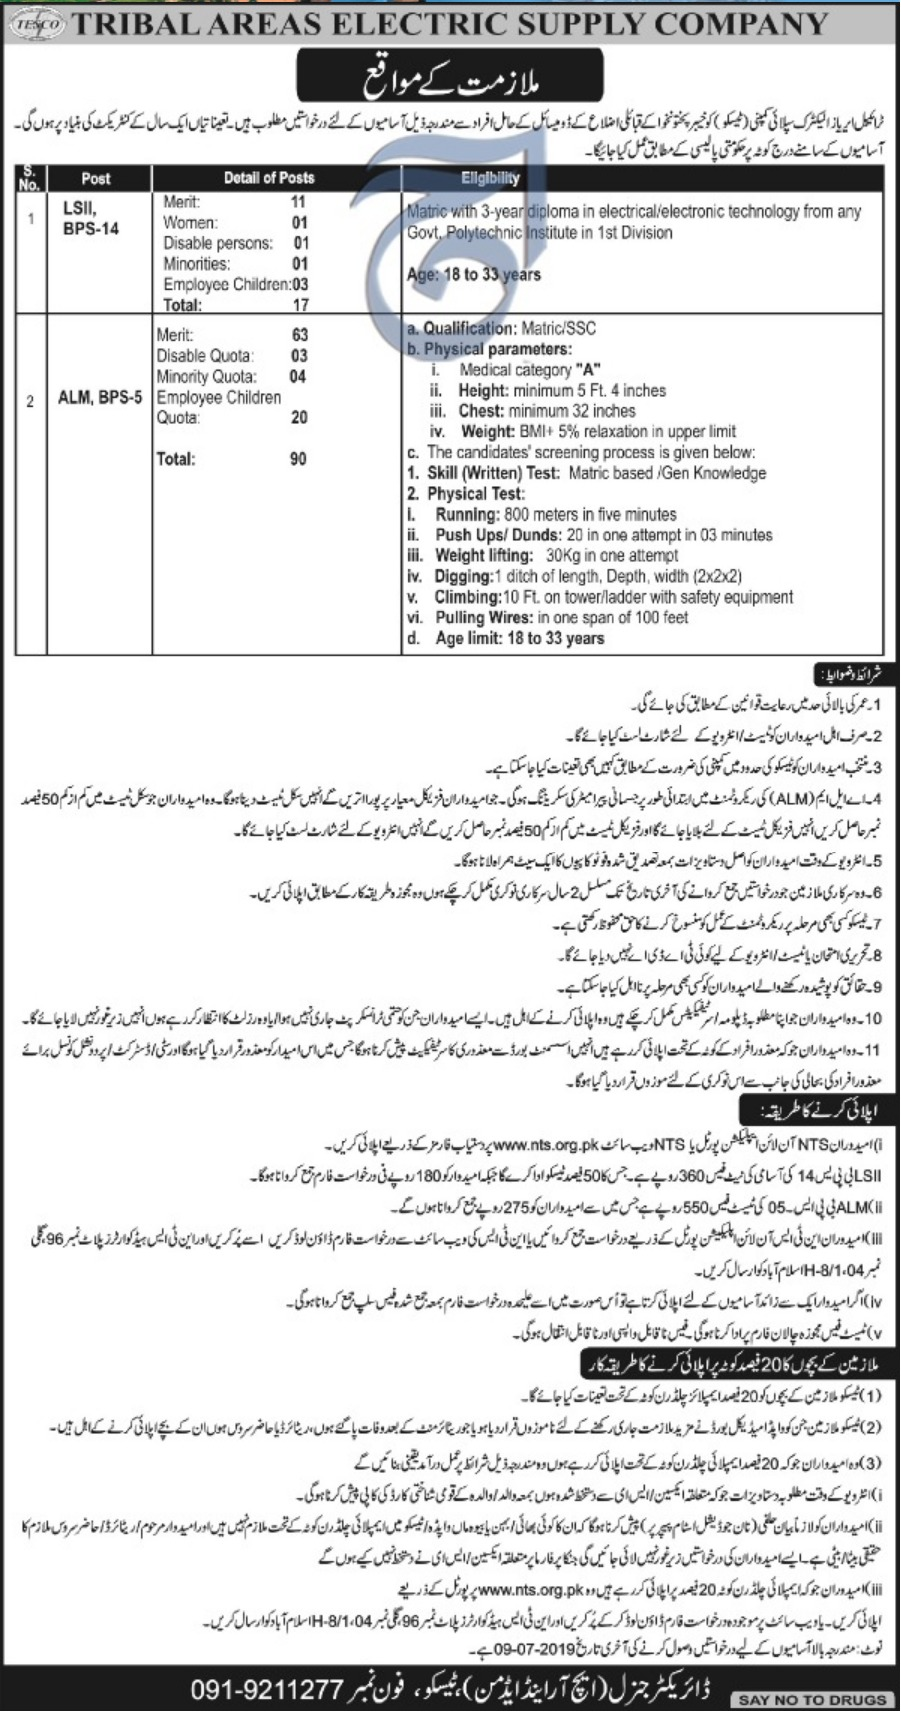 Nts today jobs